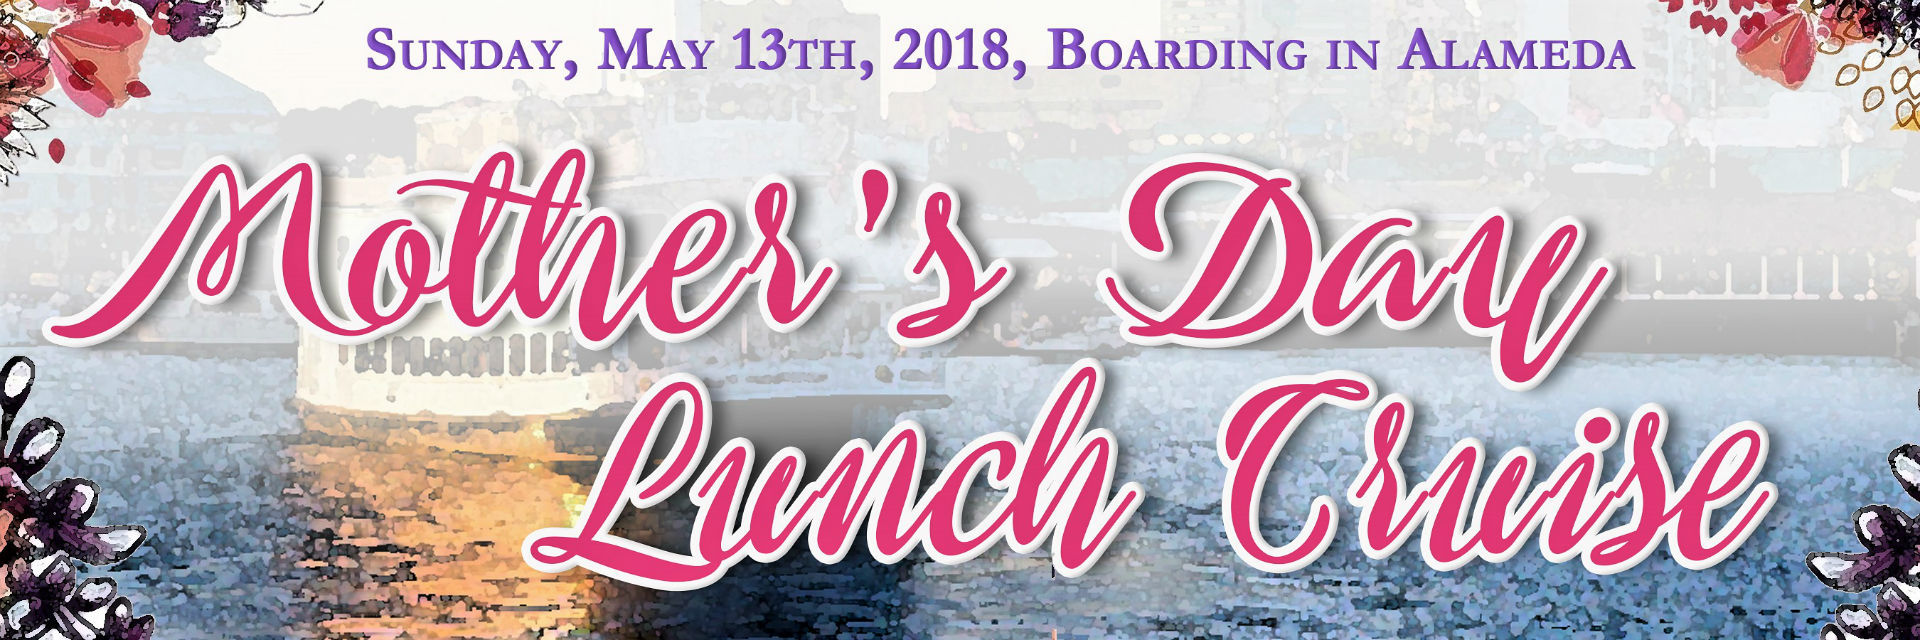 san francisco bay cruise for mothers day